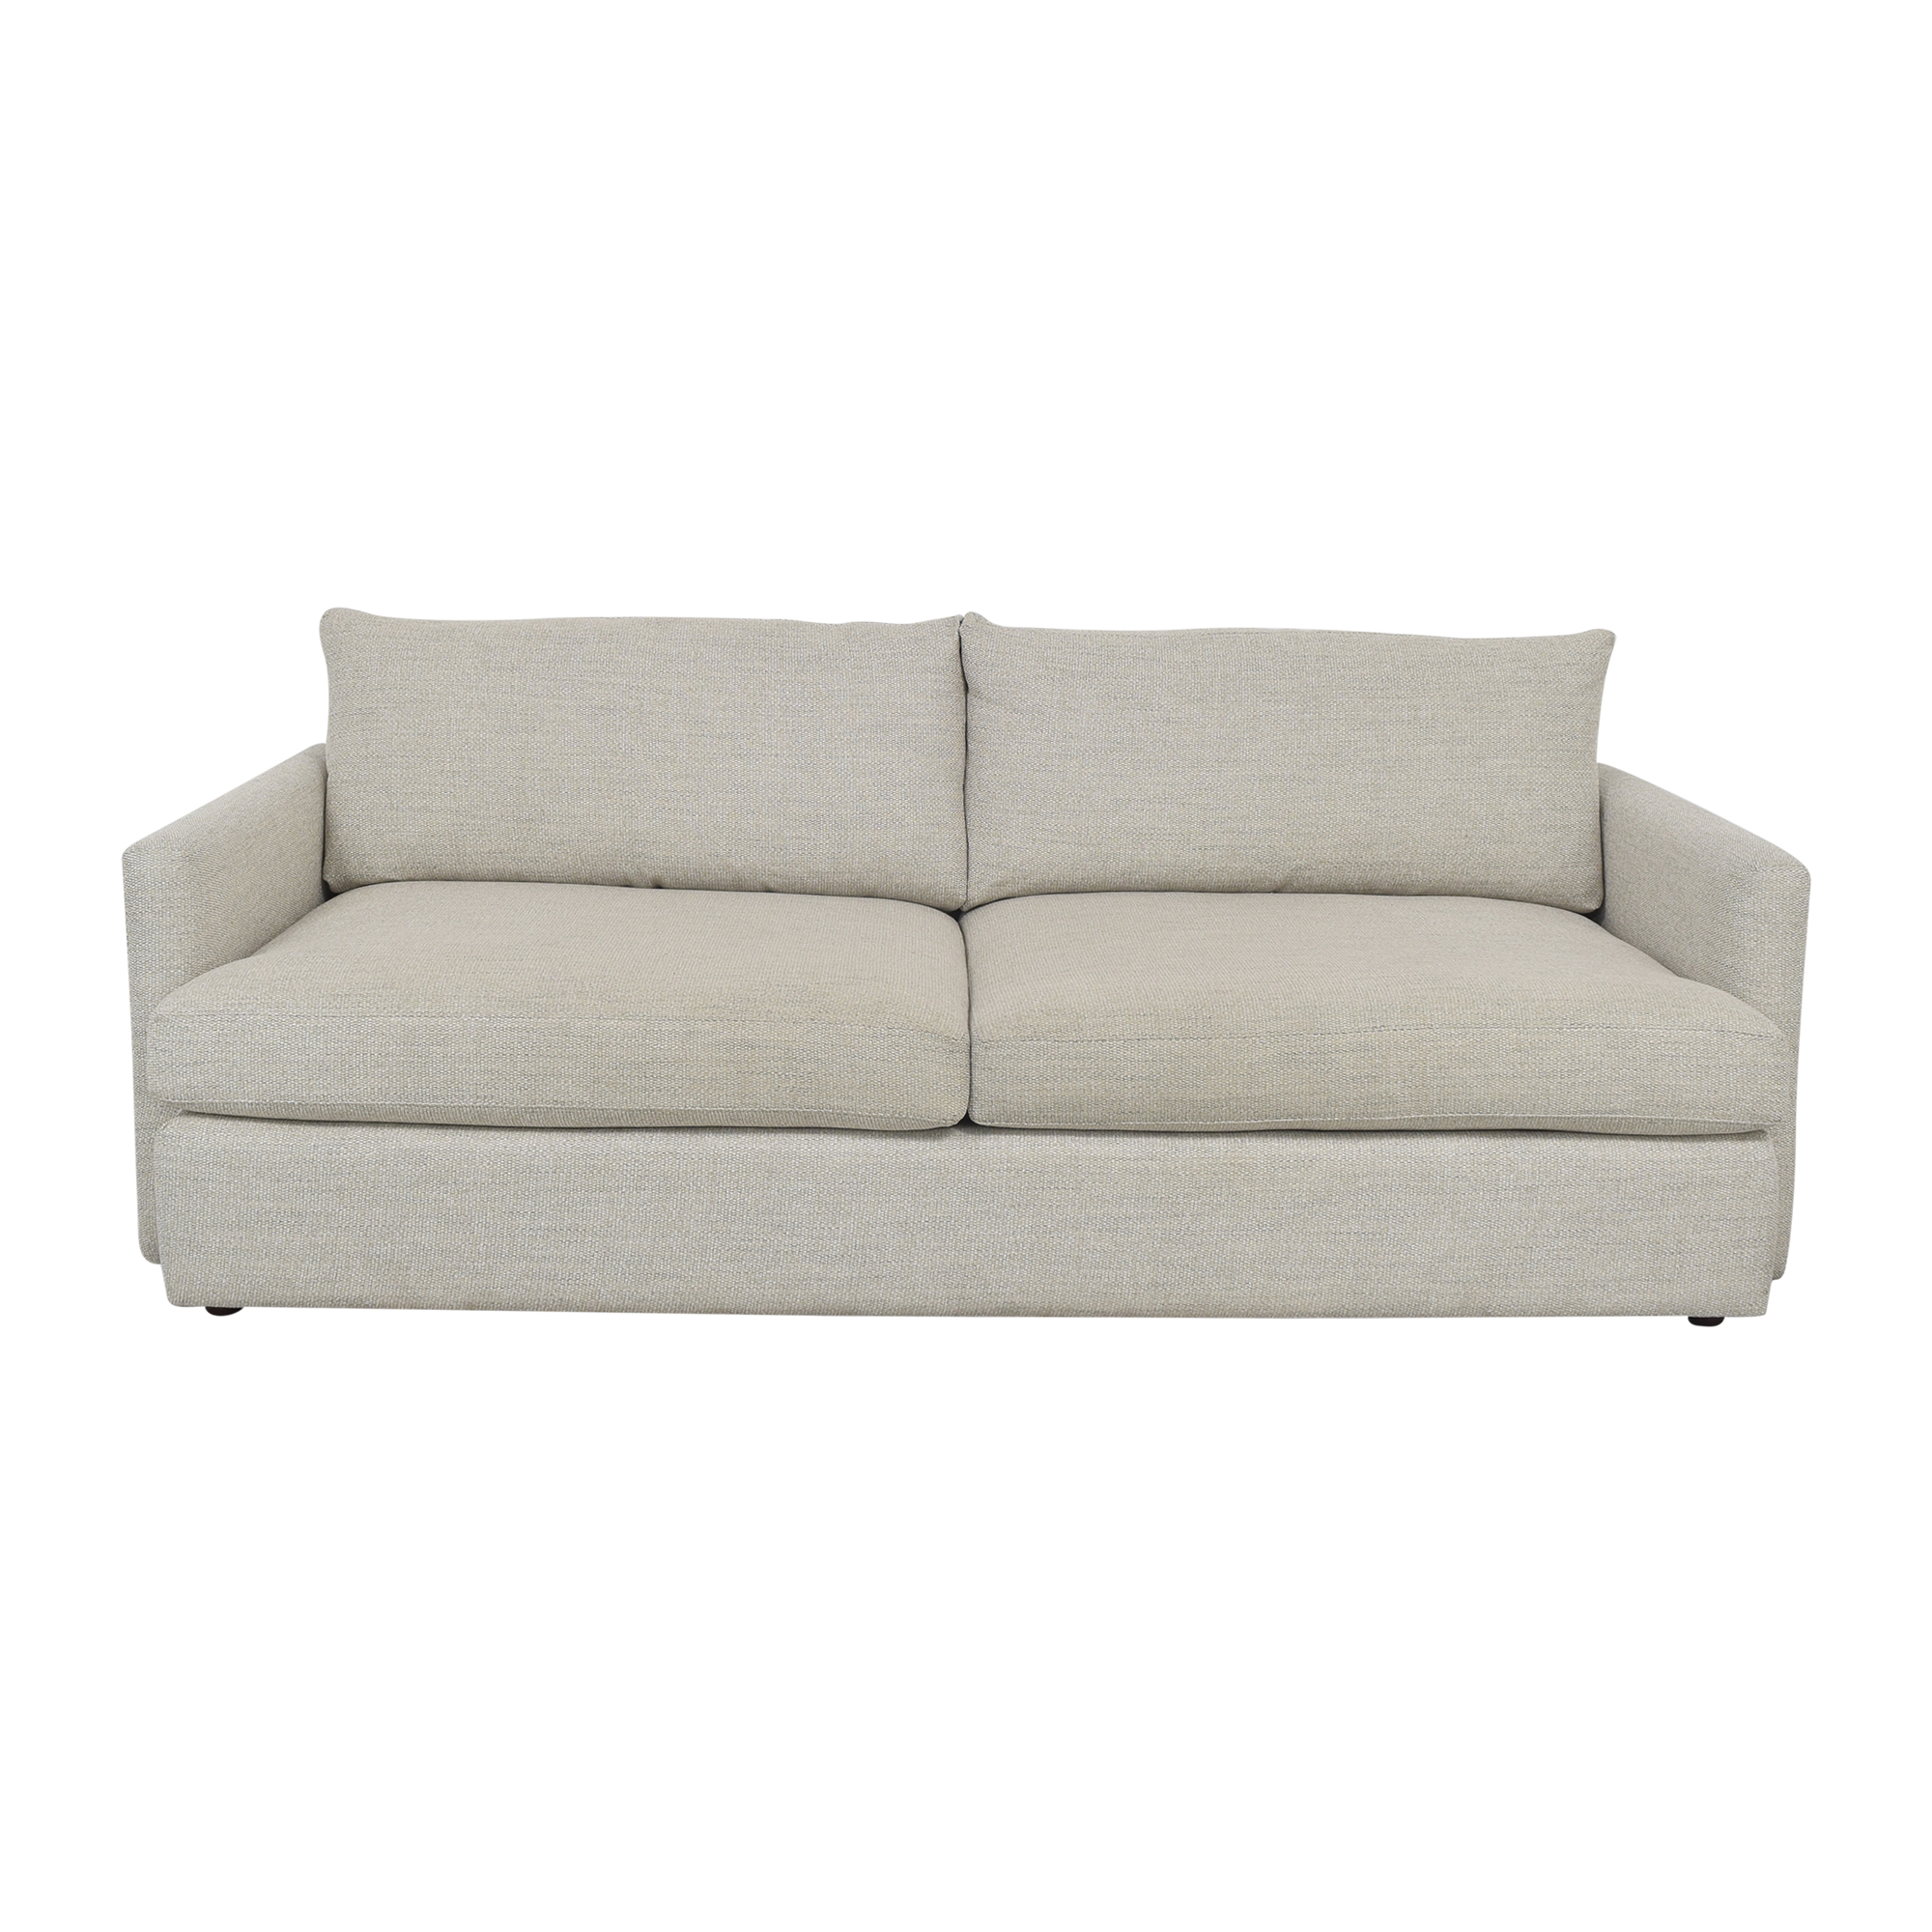 Crate & Barrel Crate & Barrel Lounge II Sofa second hand